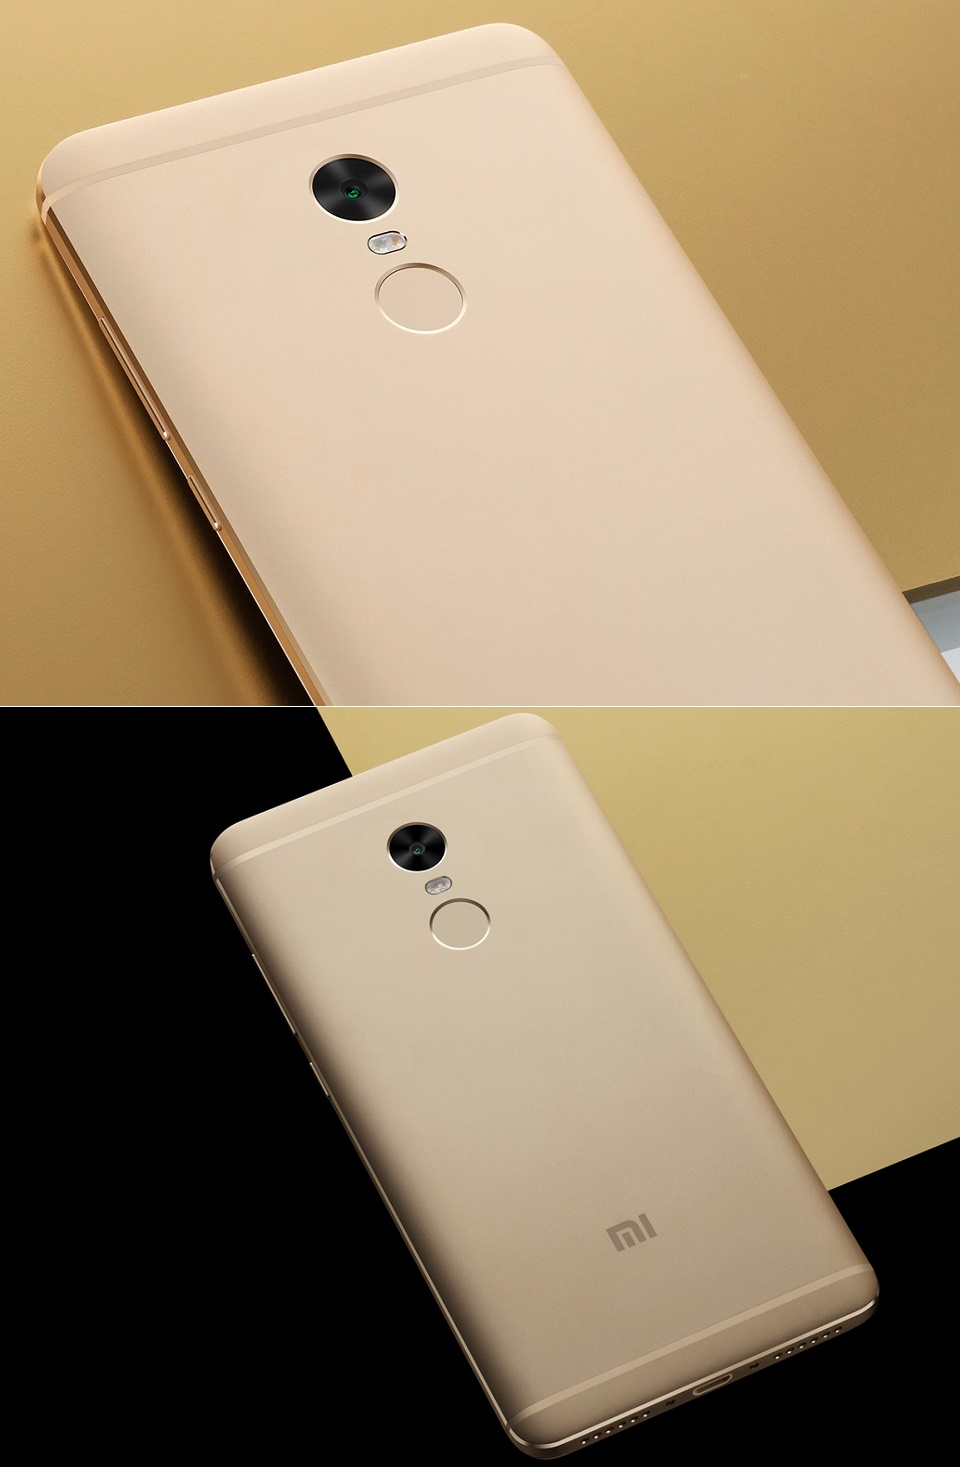 Смартфон Xiaomi Redmi Note 4 Black 3/64 Gb сканер и камера